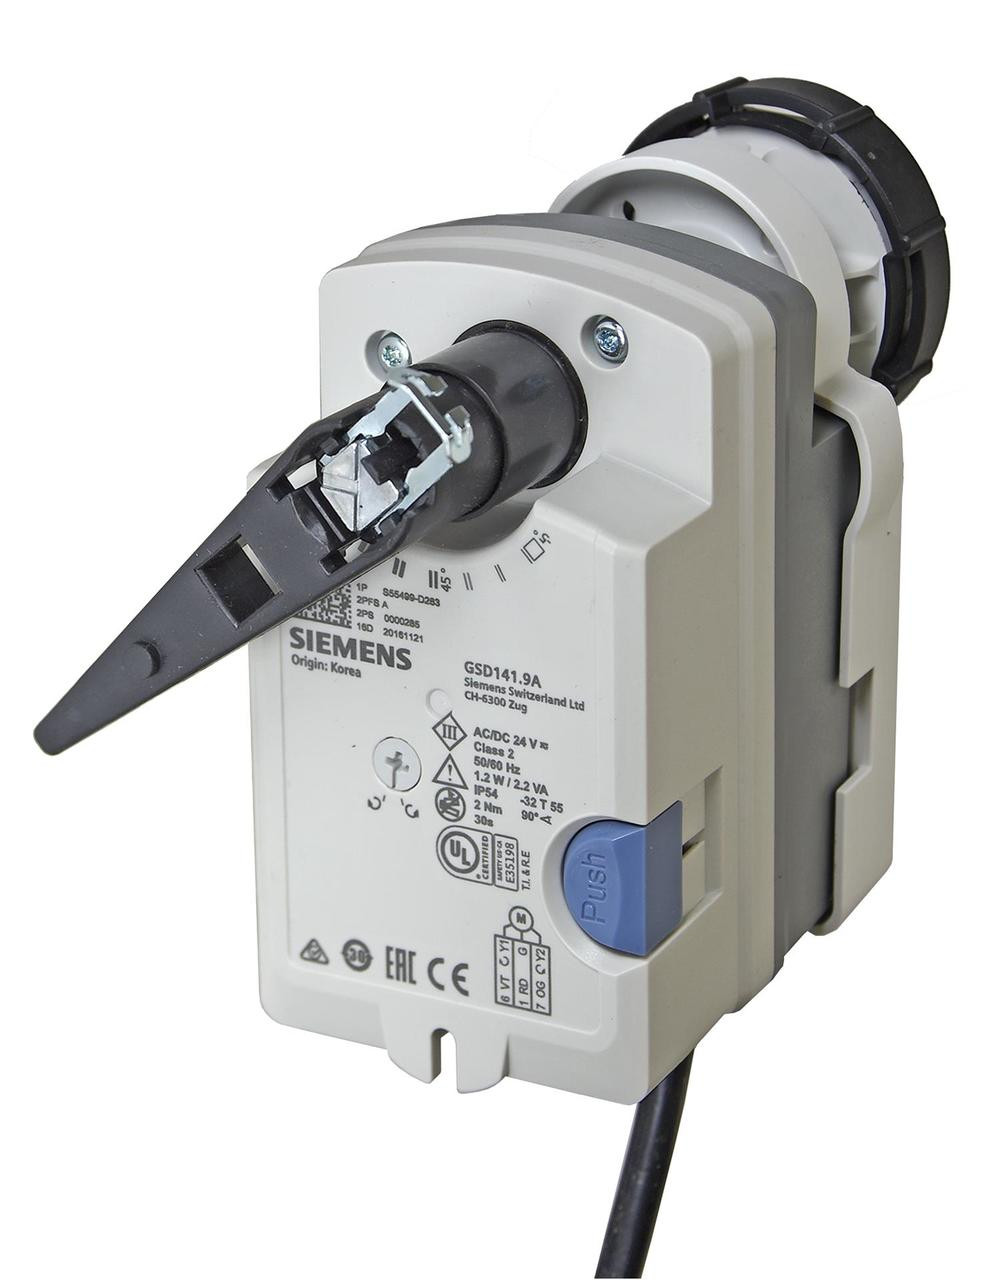 Siemens GSD141.9A Rotary actuators for ball valves